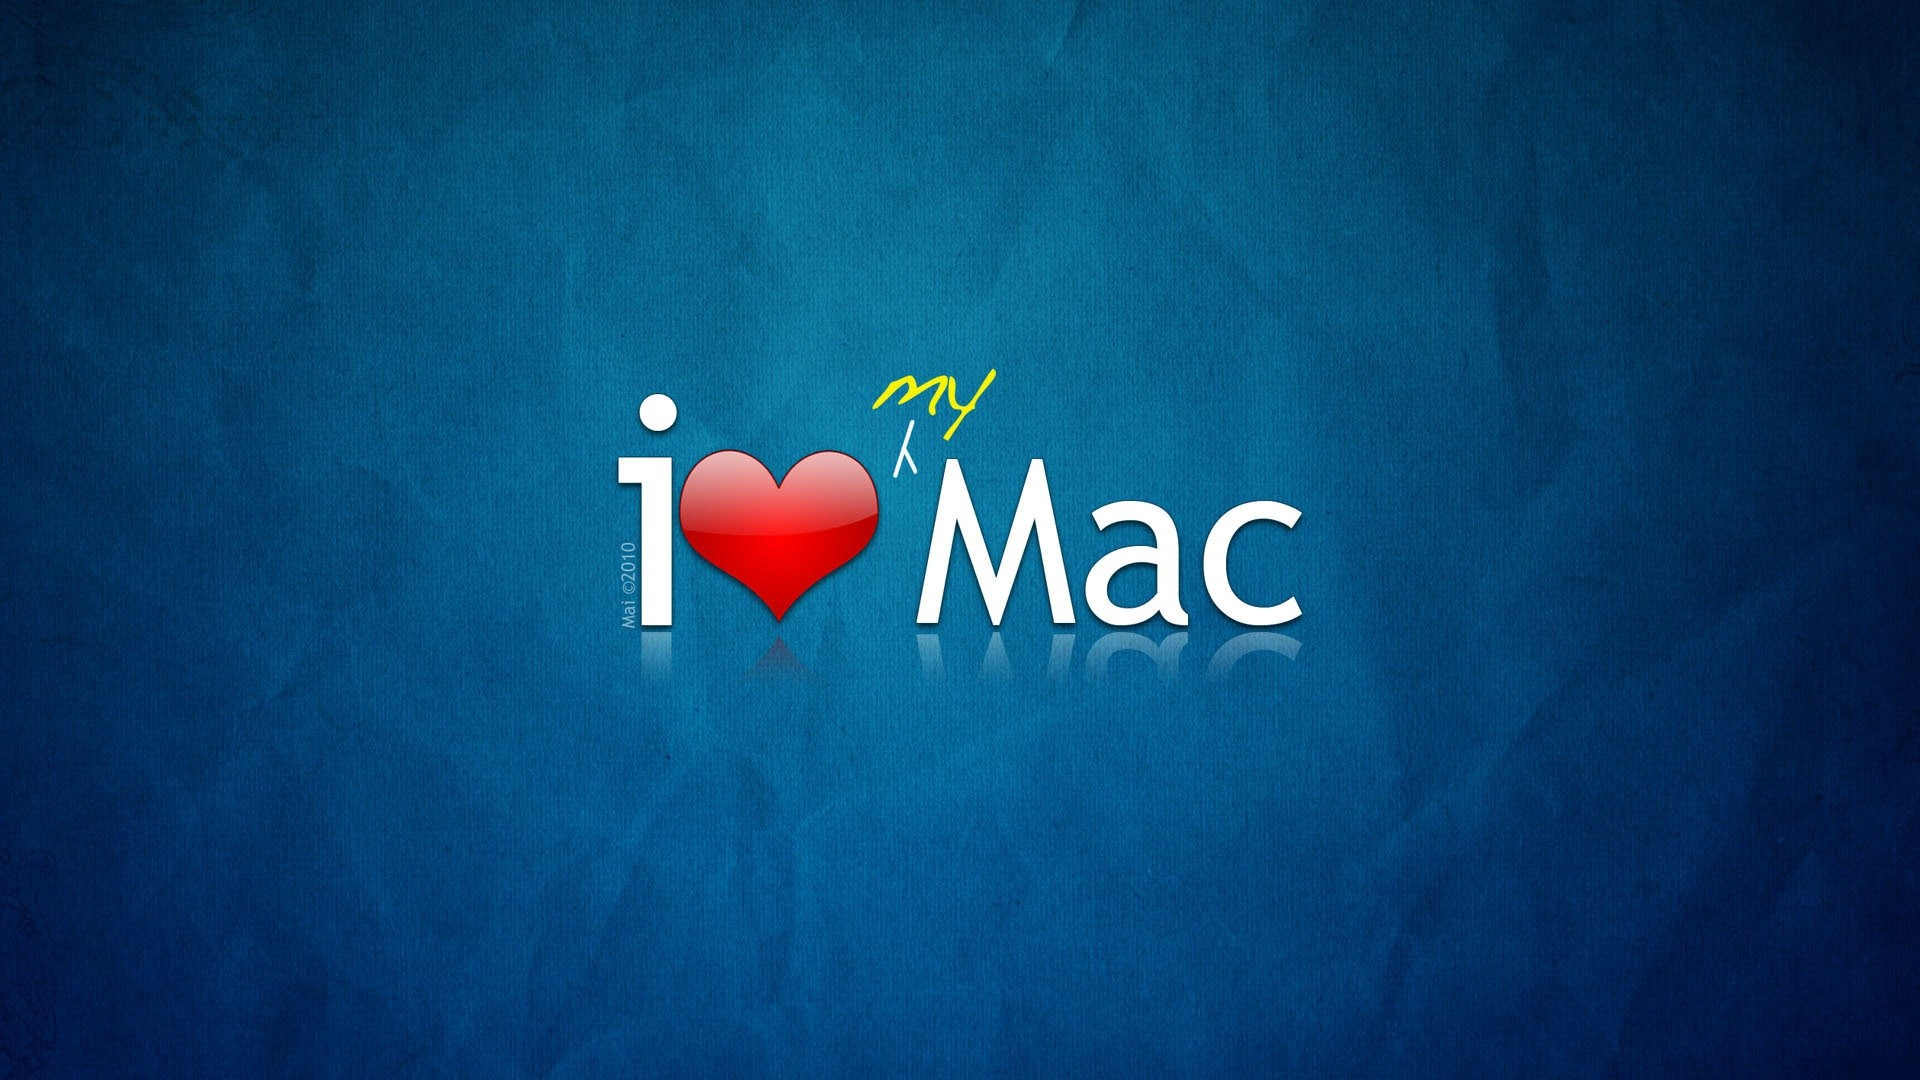 mac hd wallpapers 1080p (70+ background pictures)